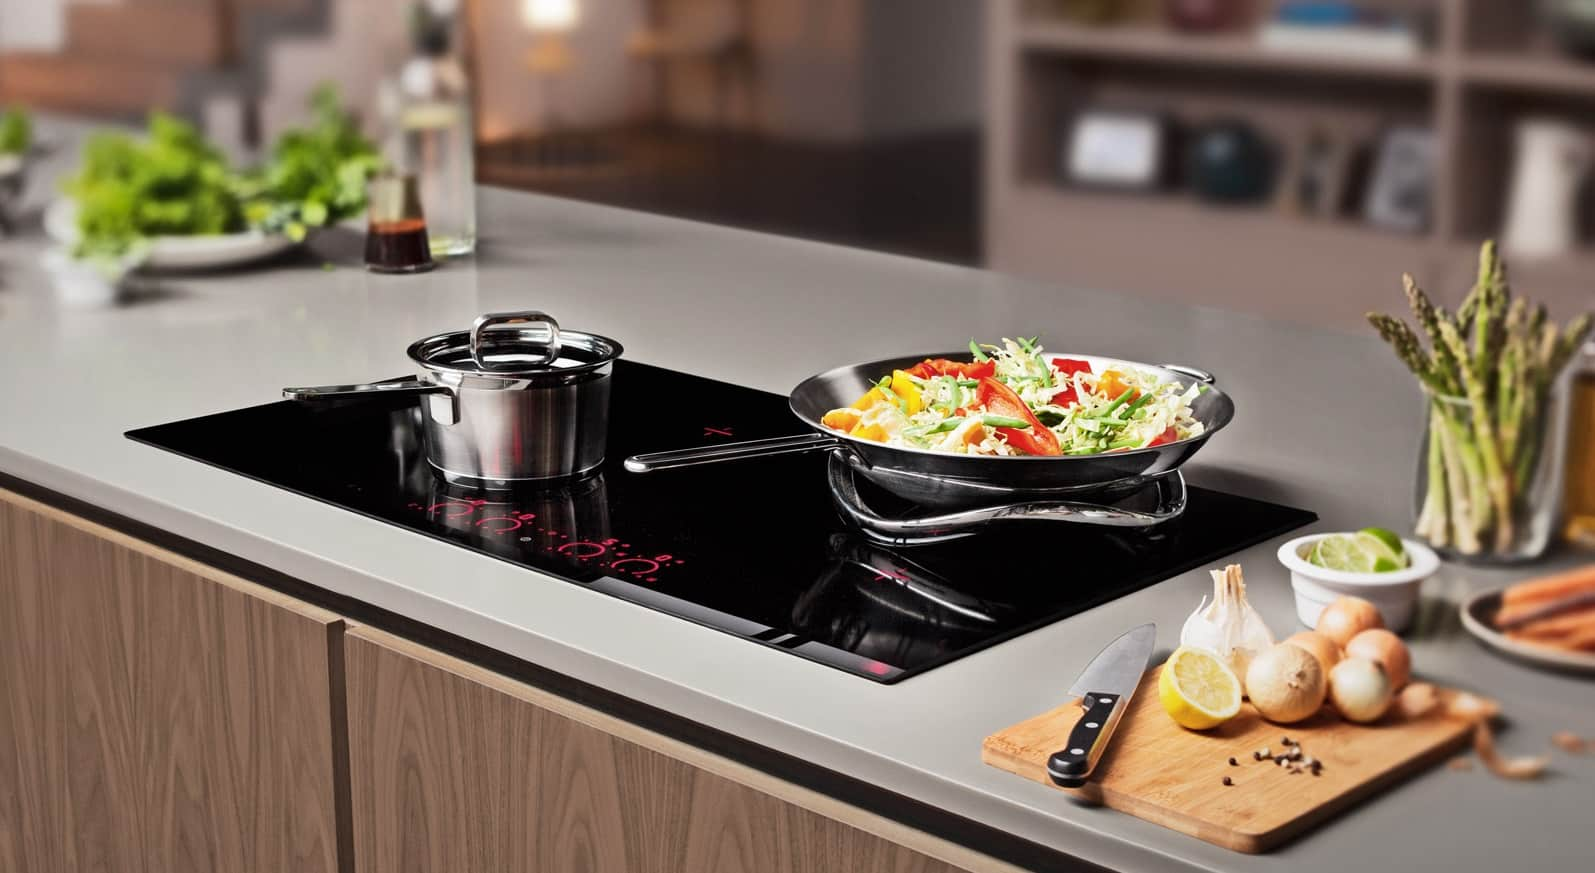 How to Remodel Your Kitchen In a Single Weekend. Frying pan with a salad on a modern built-in hob